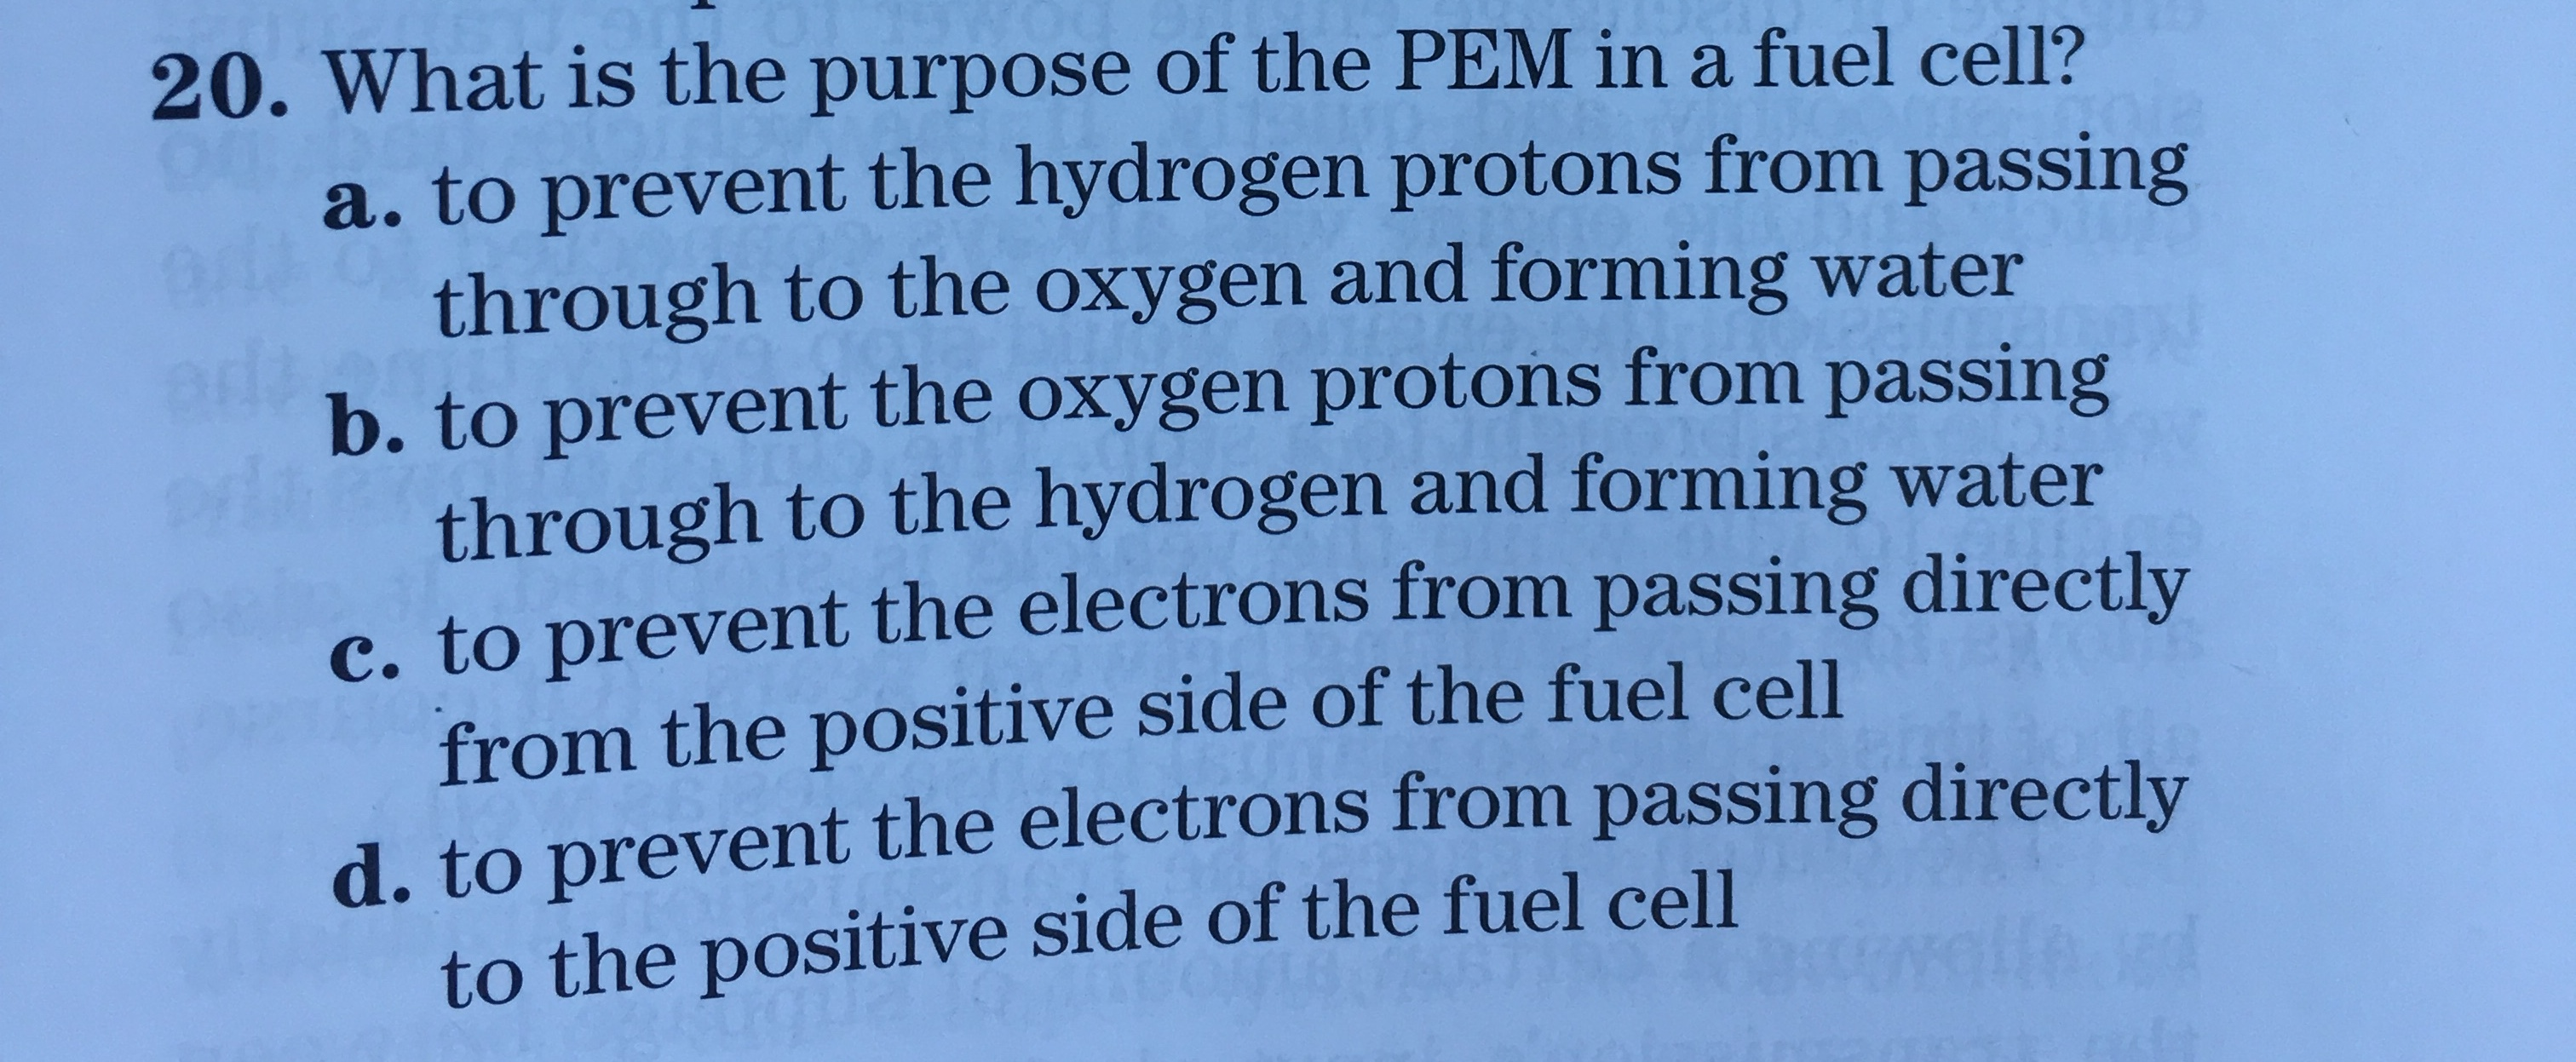 20. What is the purpose of the PEM in a fuel cell? a. to prevent the hydrogen protons from passing through to the oxygen and forming water b. to prevent the oxygen protons from passing through to the hydrogen and forming water c. to prevent the electrons from passing directly from the positive side of the fuel cell d. to prevent the electrons from passing directly to the positive side of the fuel cell